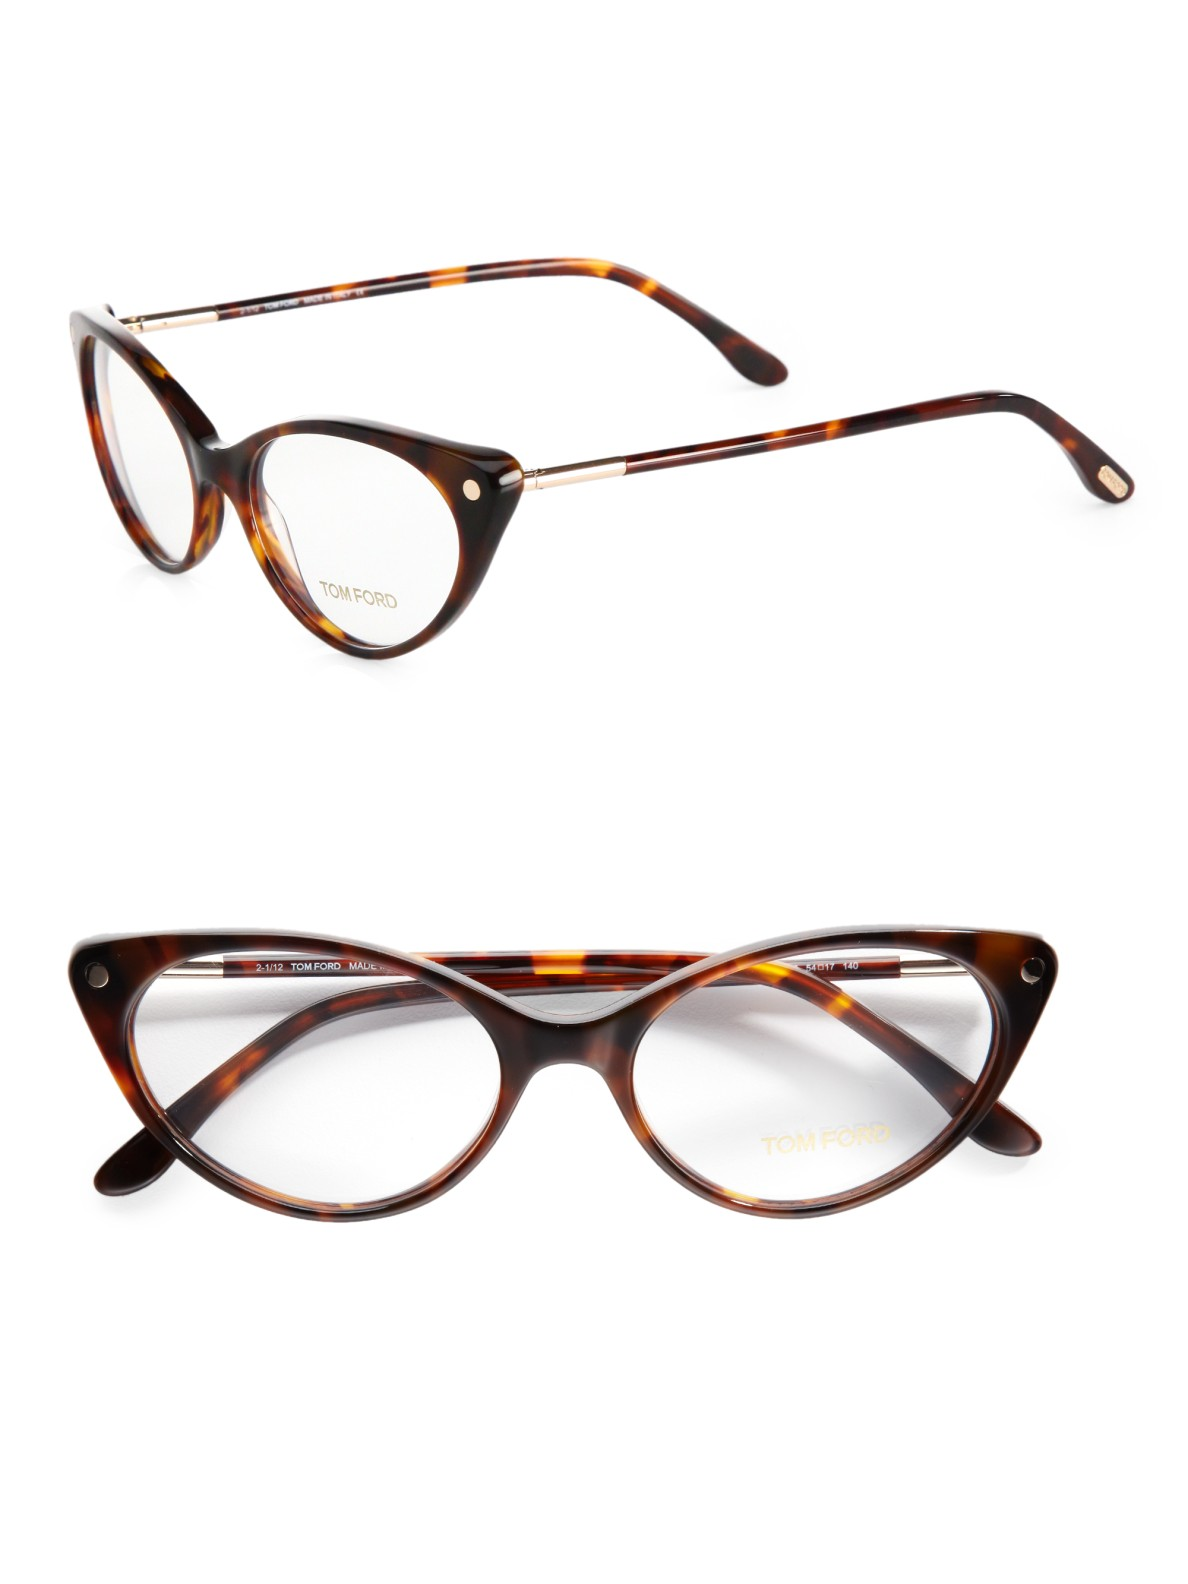 Glasses Frames Modern : Tom ford Modern Cats-Eye Plastic Eyeglasses in Brown Lyst